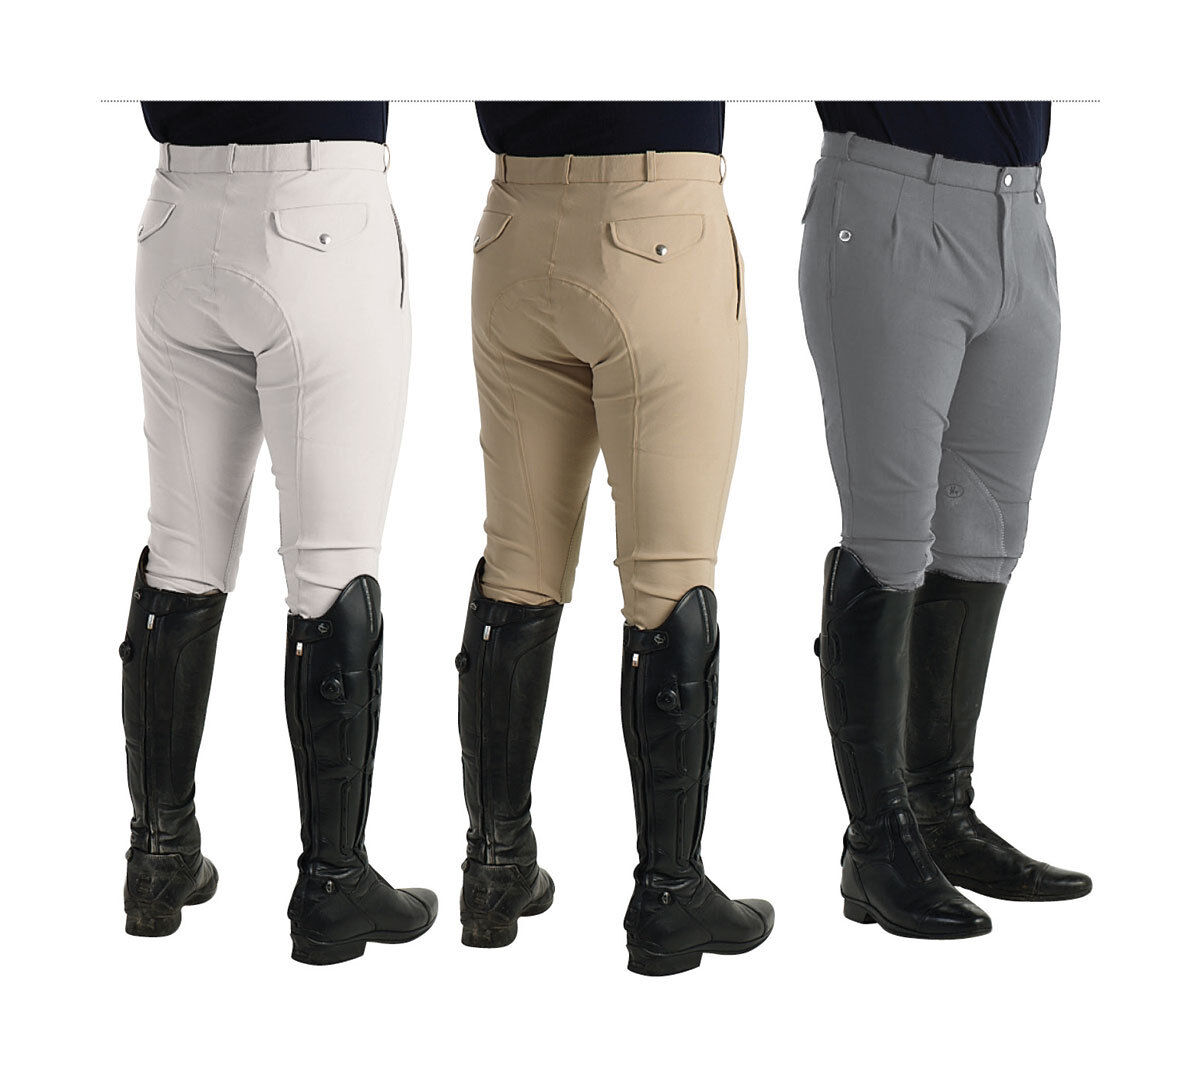 Hy PERFORMANCE JAKATA Men's Breeches Pleated Front Knee Patches  Grey Beige 28-38  honest service